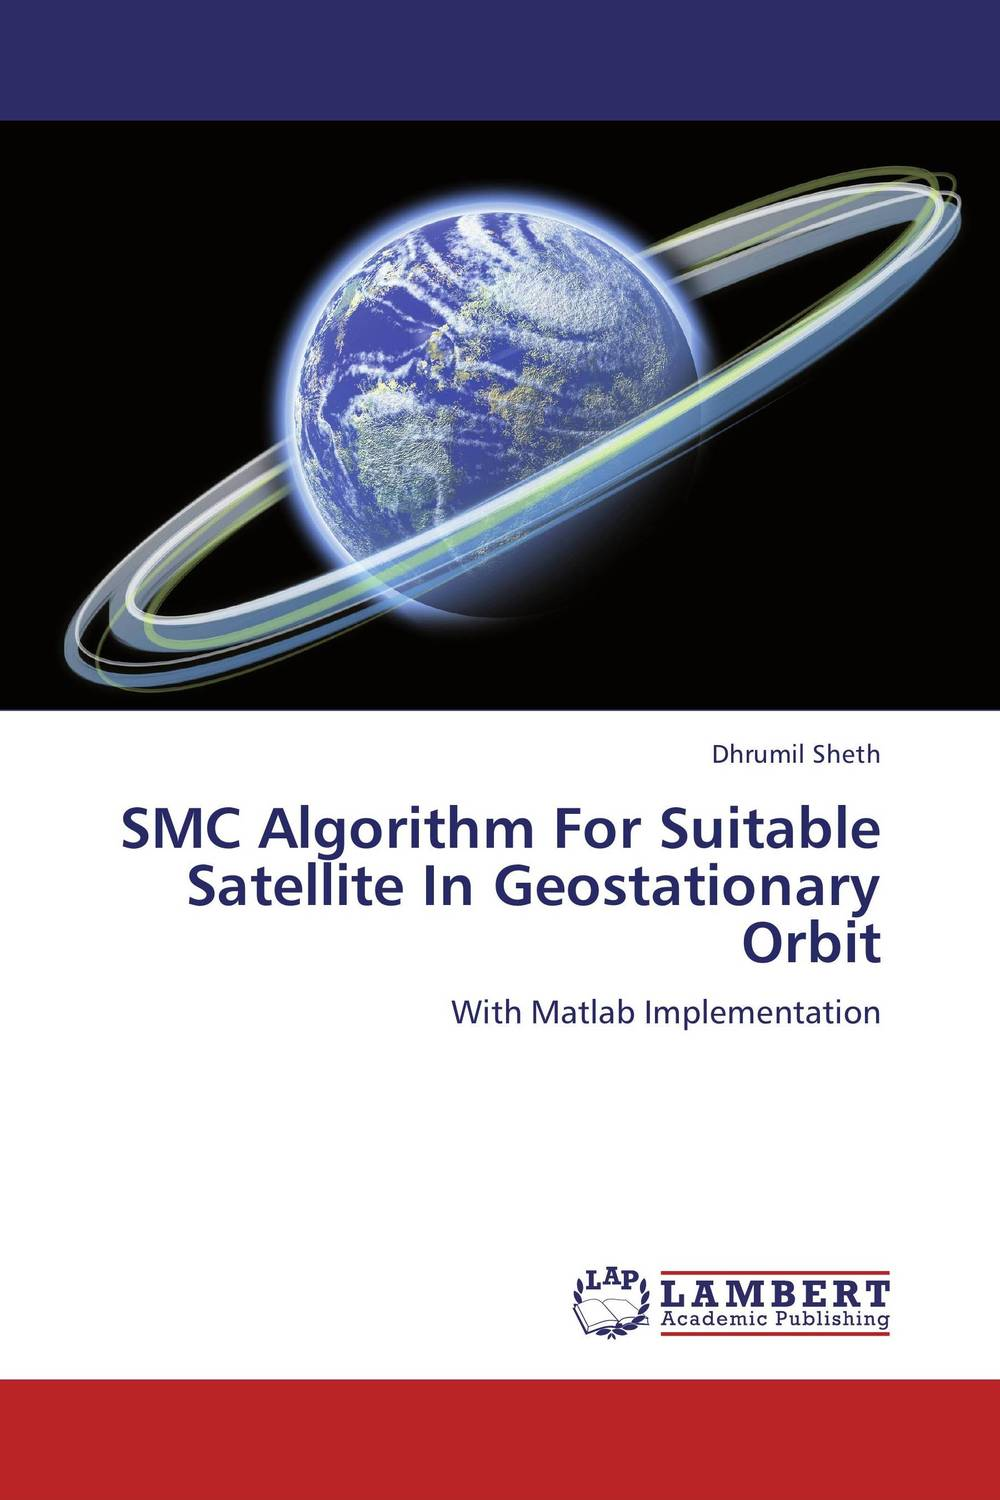 SMC Algorithm For Suitable Satellite In Geostationary Orbit verne j journey to the centre of the earth